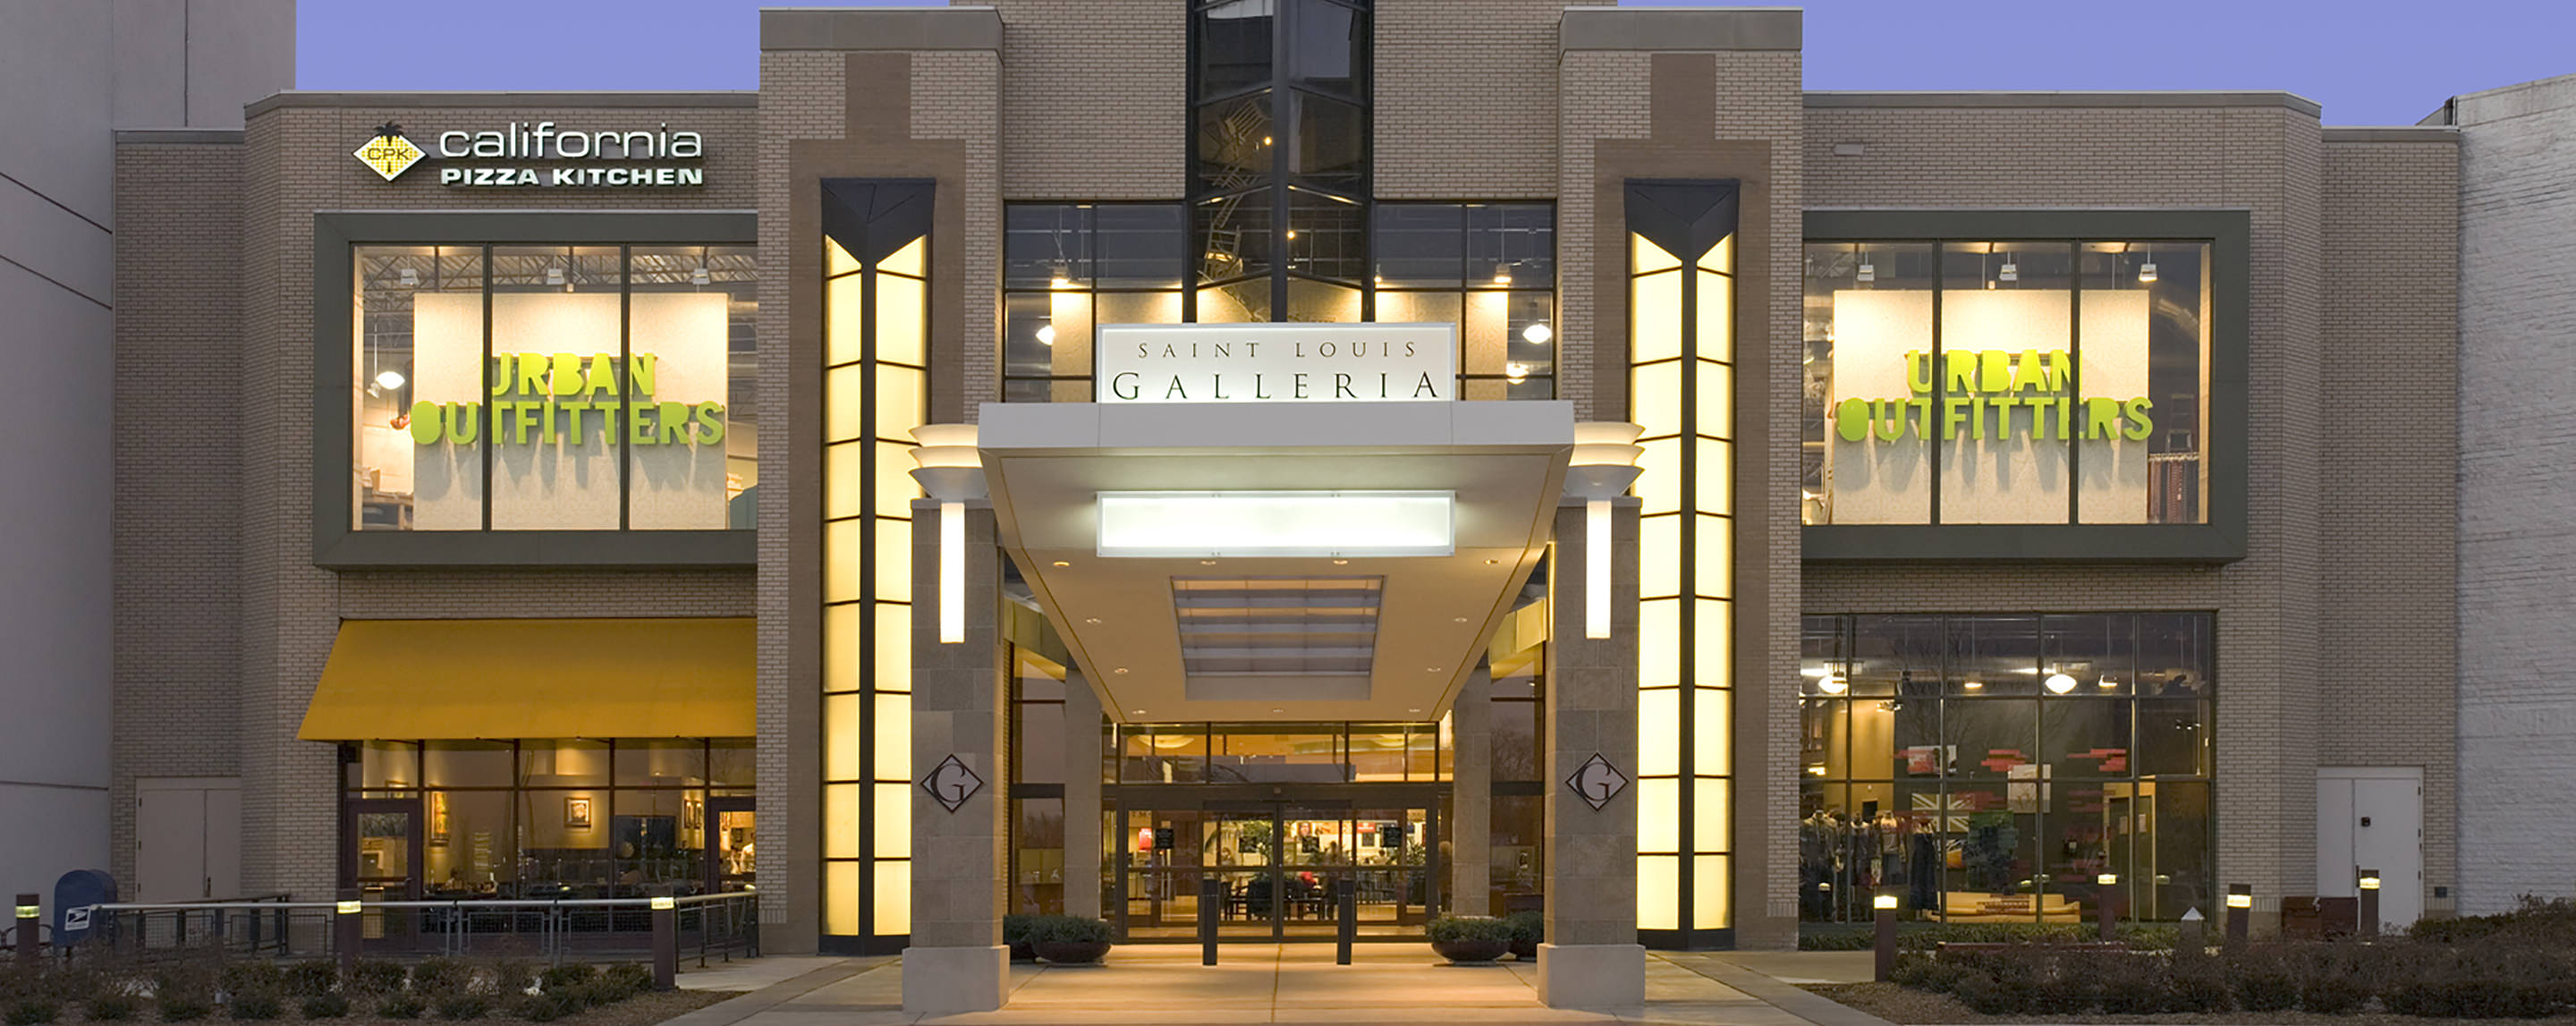 Urban Outfitters and California Pizza Kitchen can be seen through the brightly lit exterior entrance at Saint Louis Galleria.